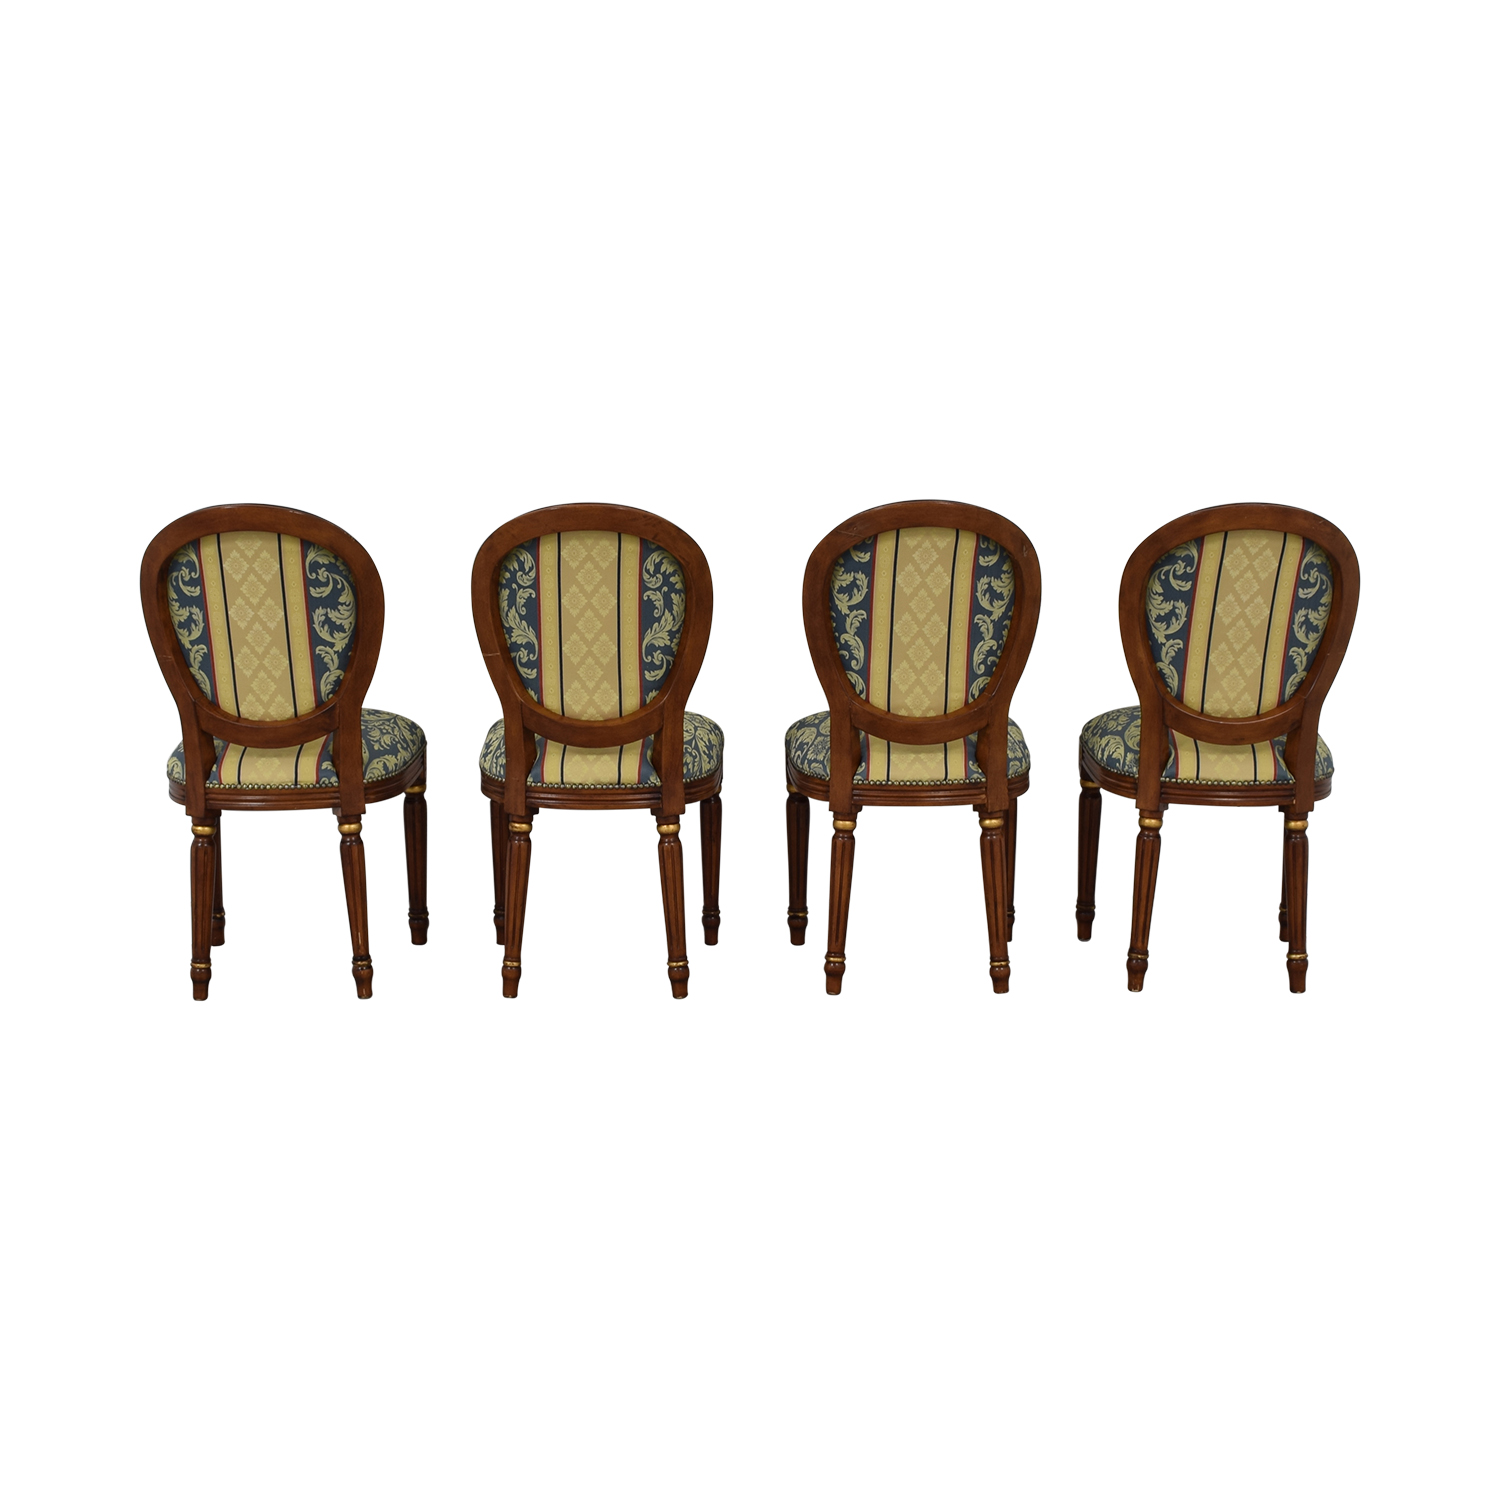 buy  Vintage Upholstered Dining Chairs online